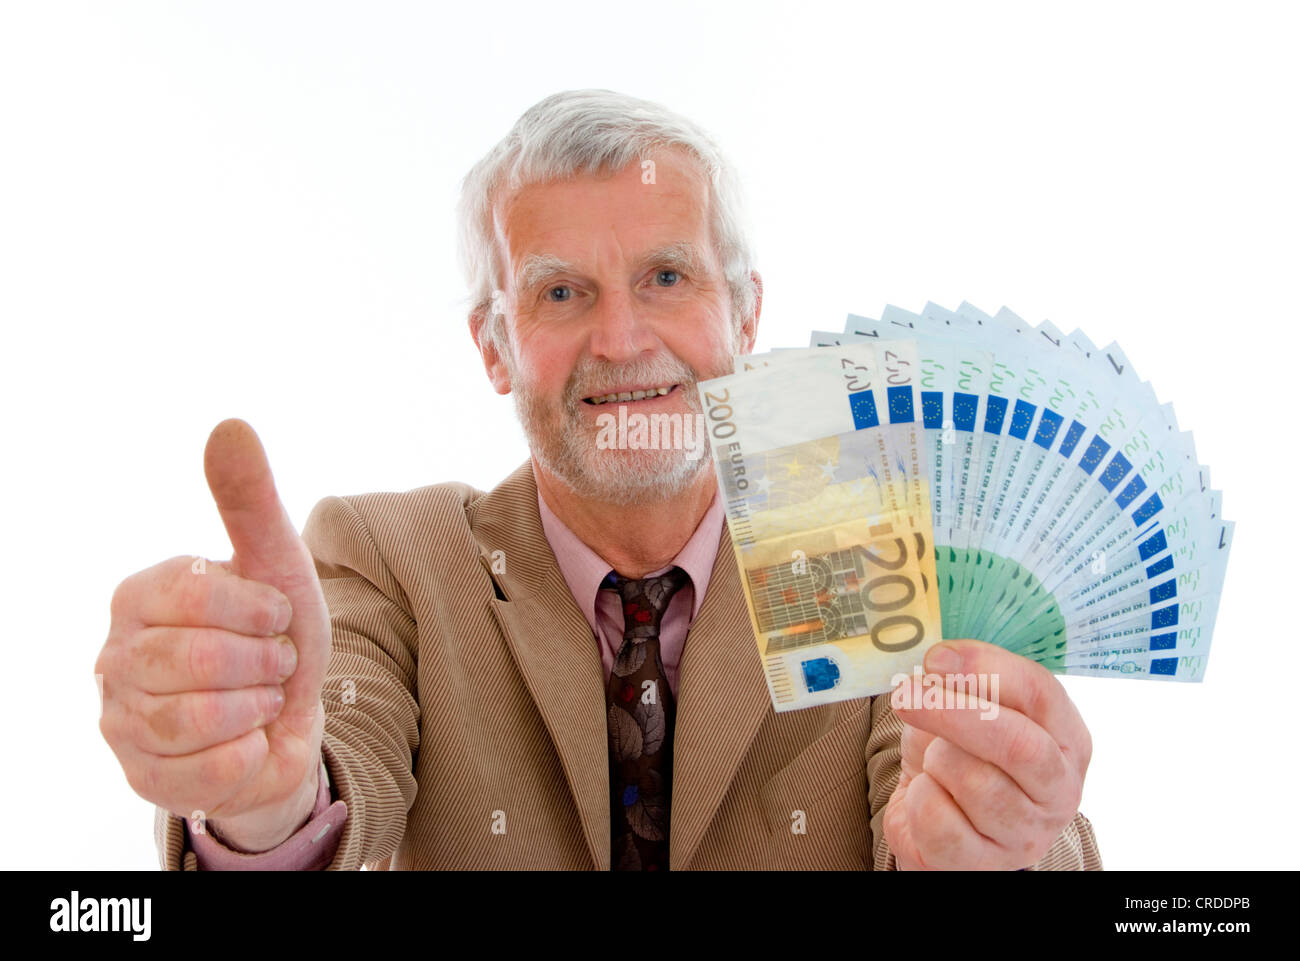 older, successful man with lots of banknotes in his hand - Stock Image